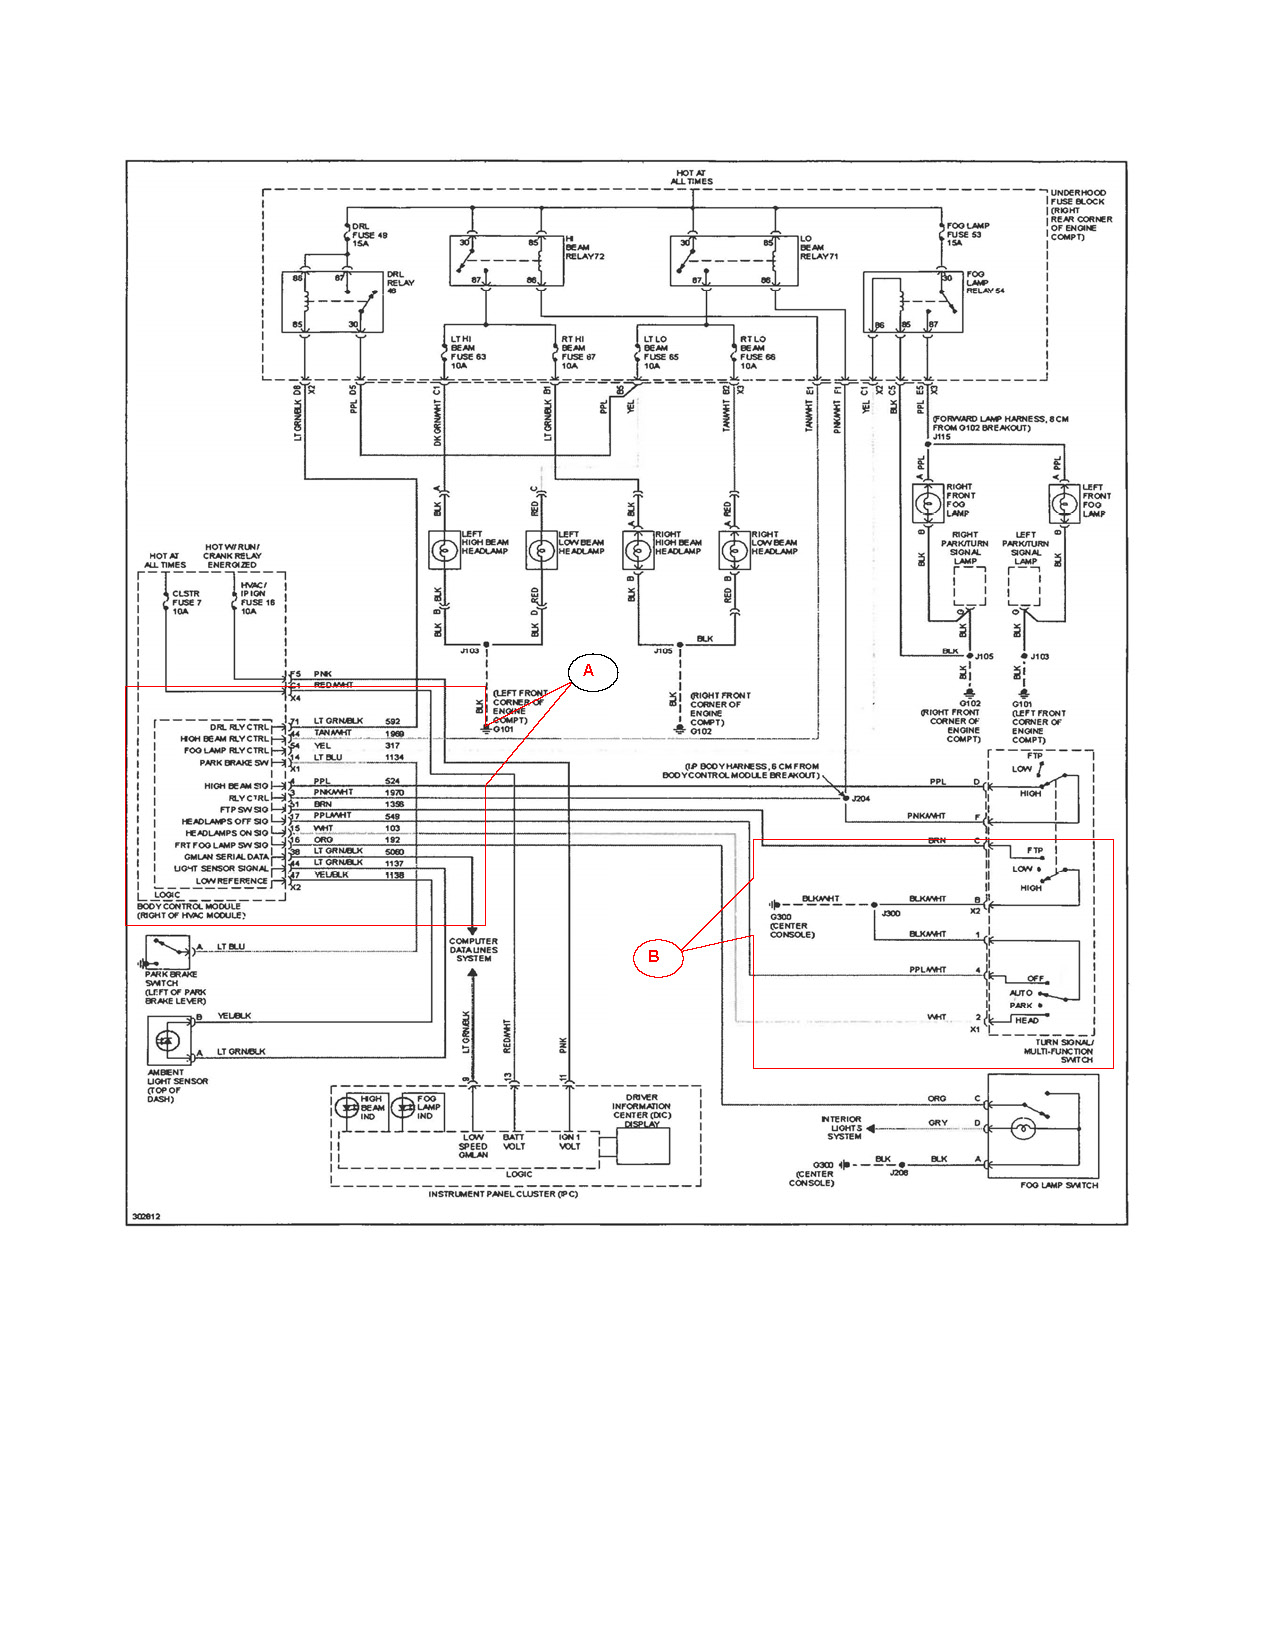 2009 saturn sky fuse diagram schematic diagrams rh ogmconsulting co 2001 Saturn  Fuse Diagram 2002 Saturn